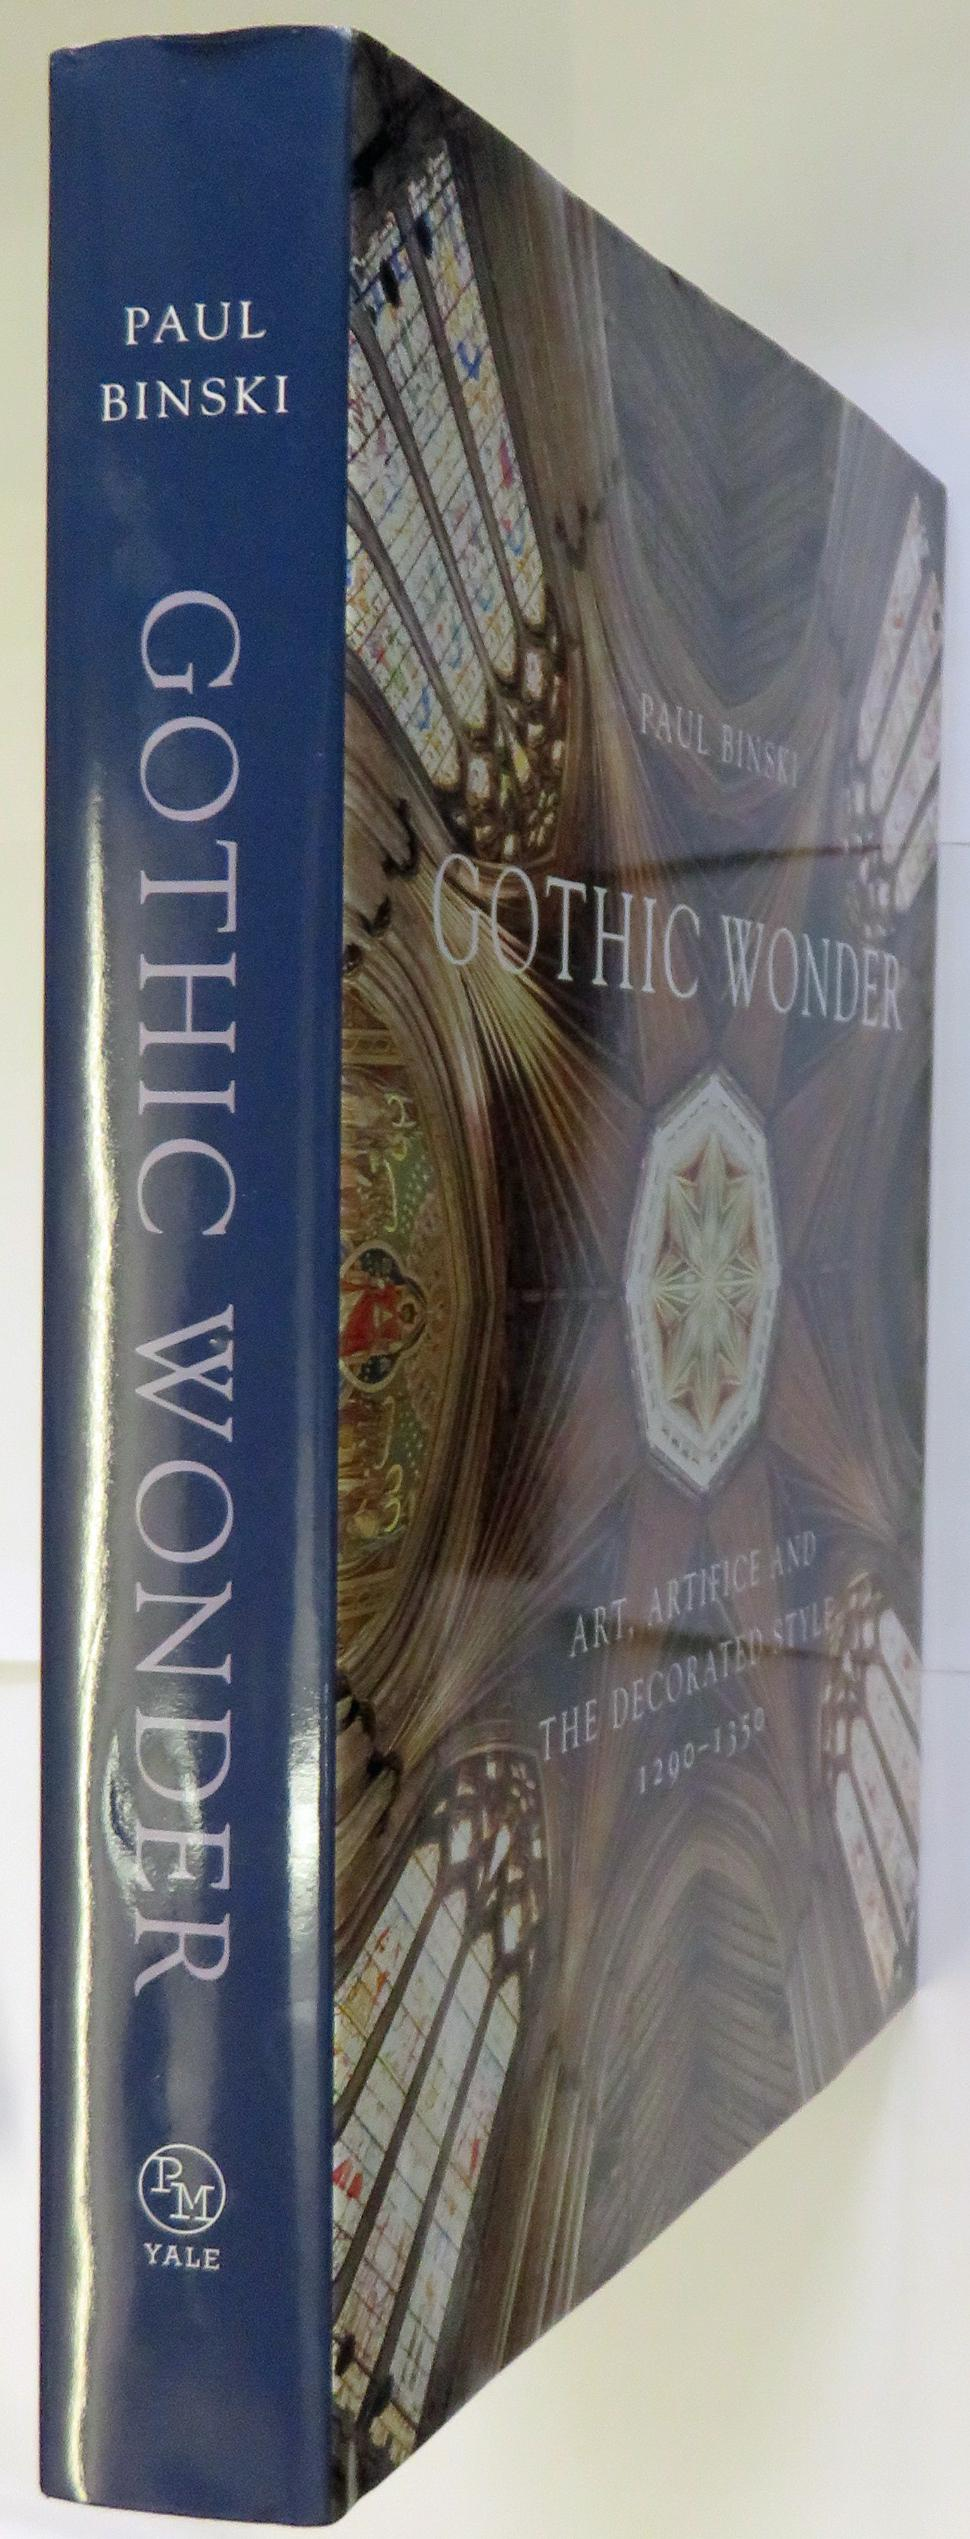 Gothic Wonder Art, Artifice and the Decorated Style 1290-1350